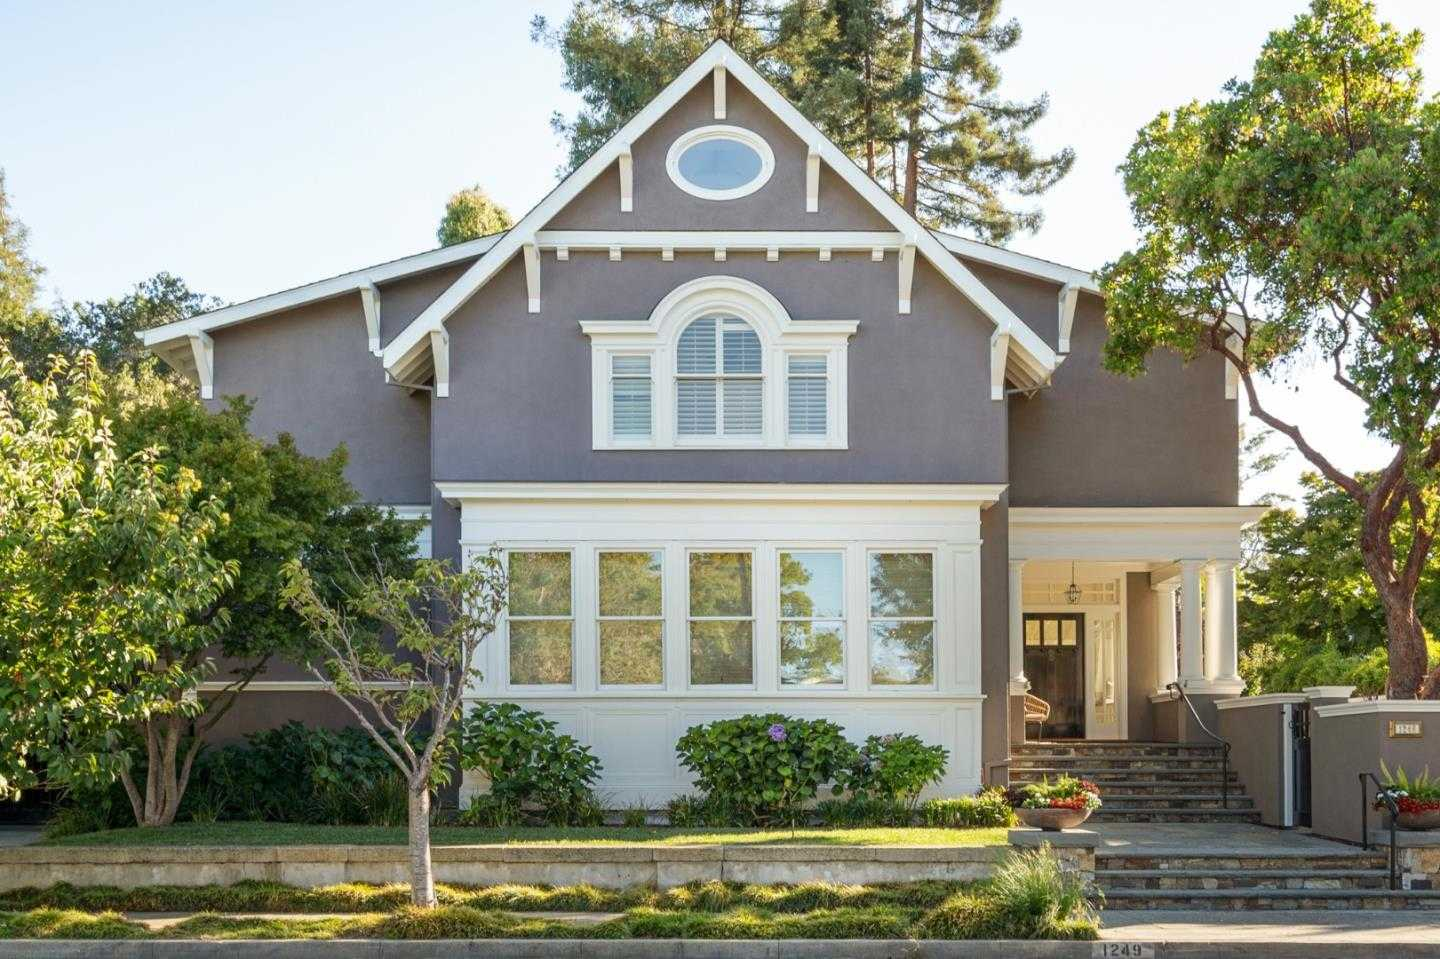 $4,950,000 - 4Br/3Ba -  for Sale in Burlingame